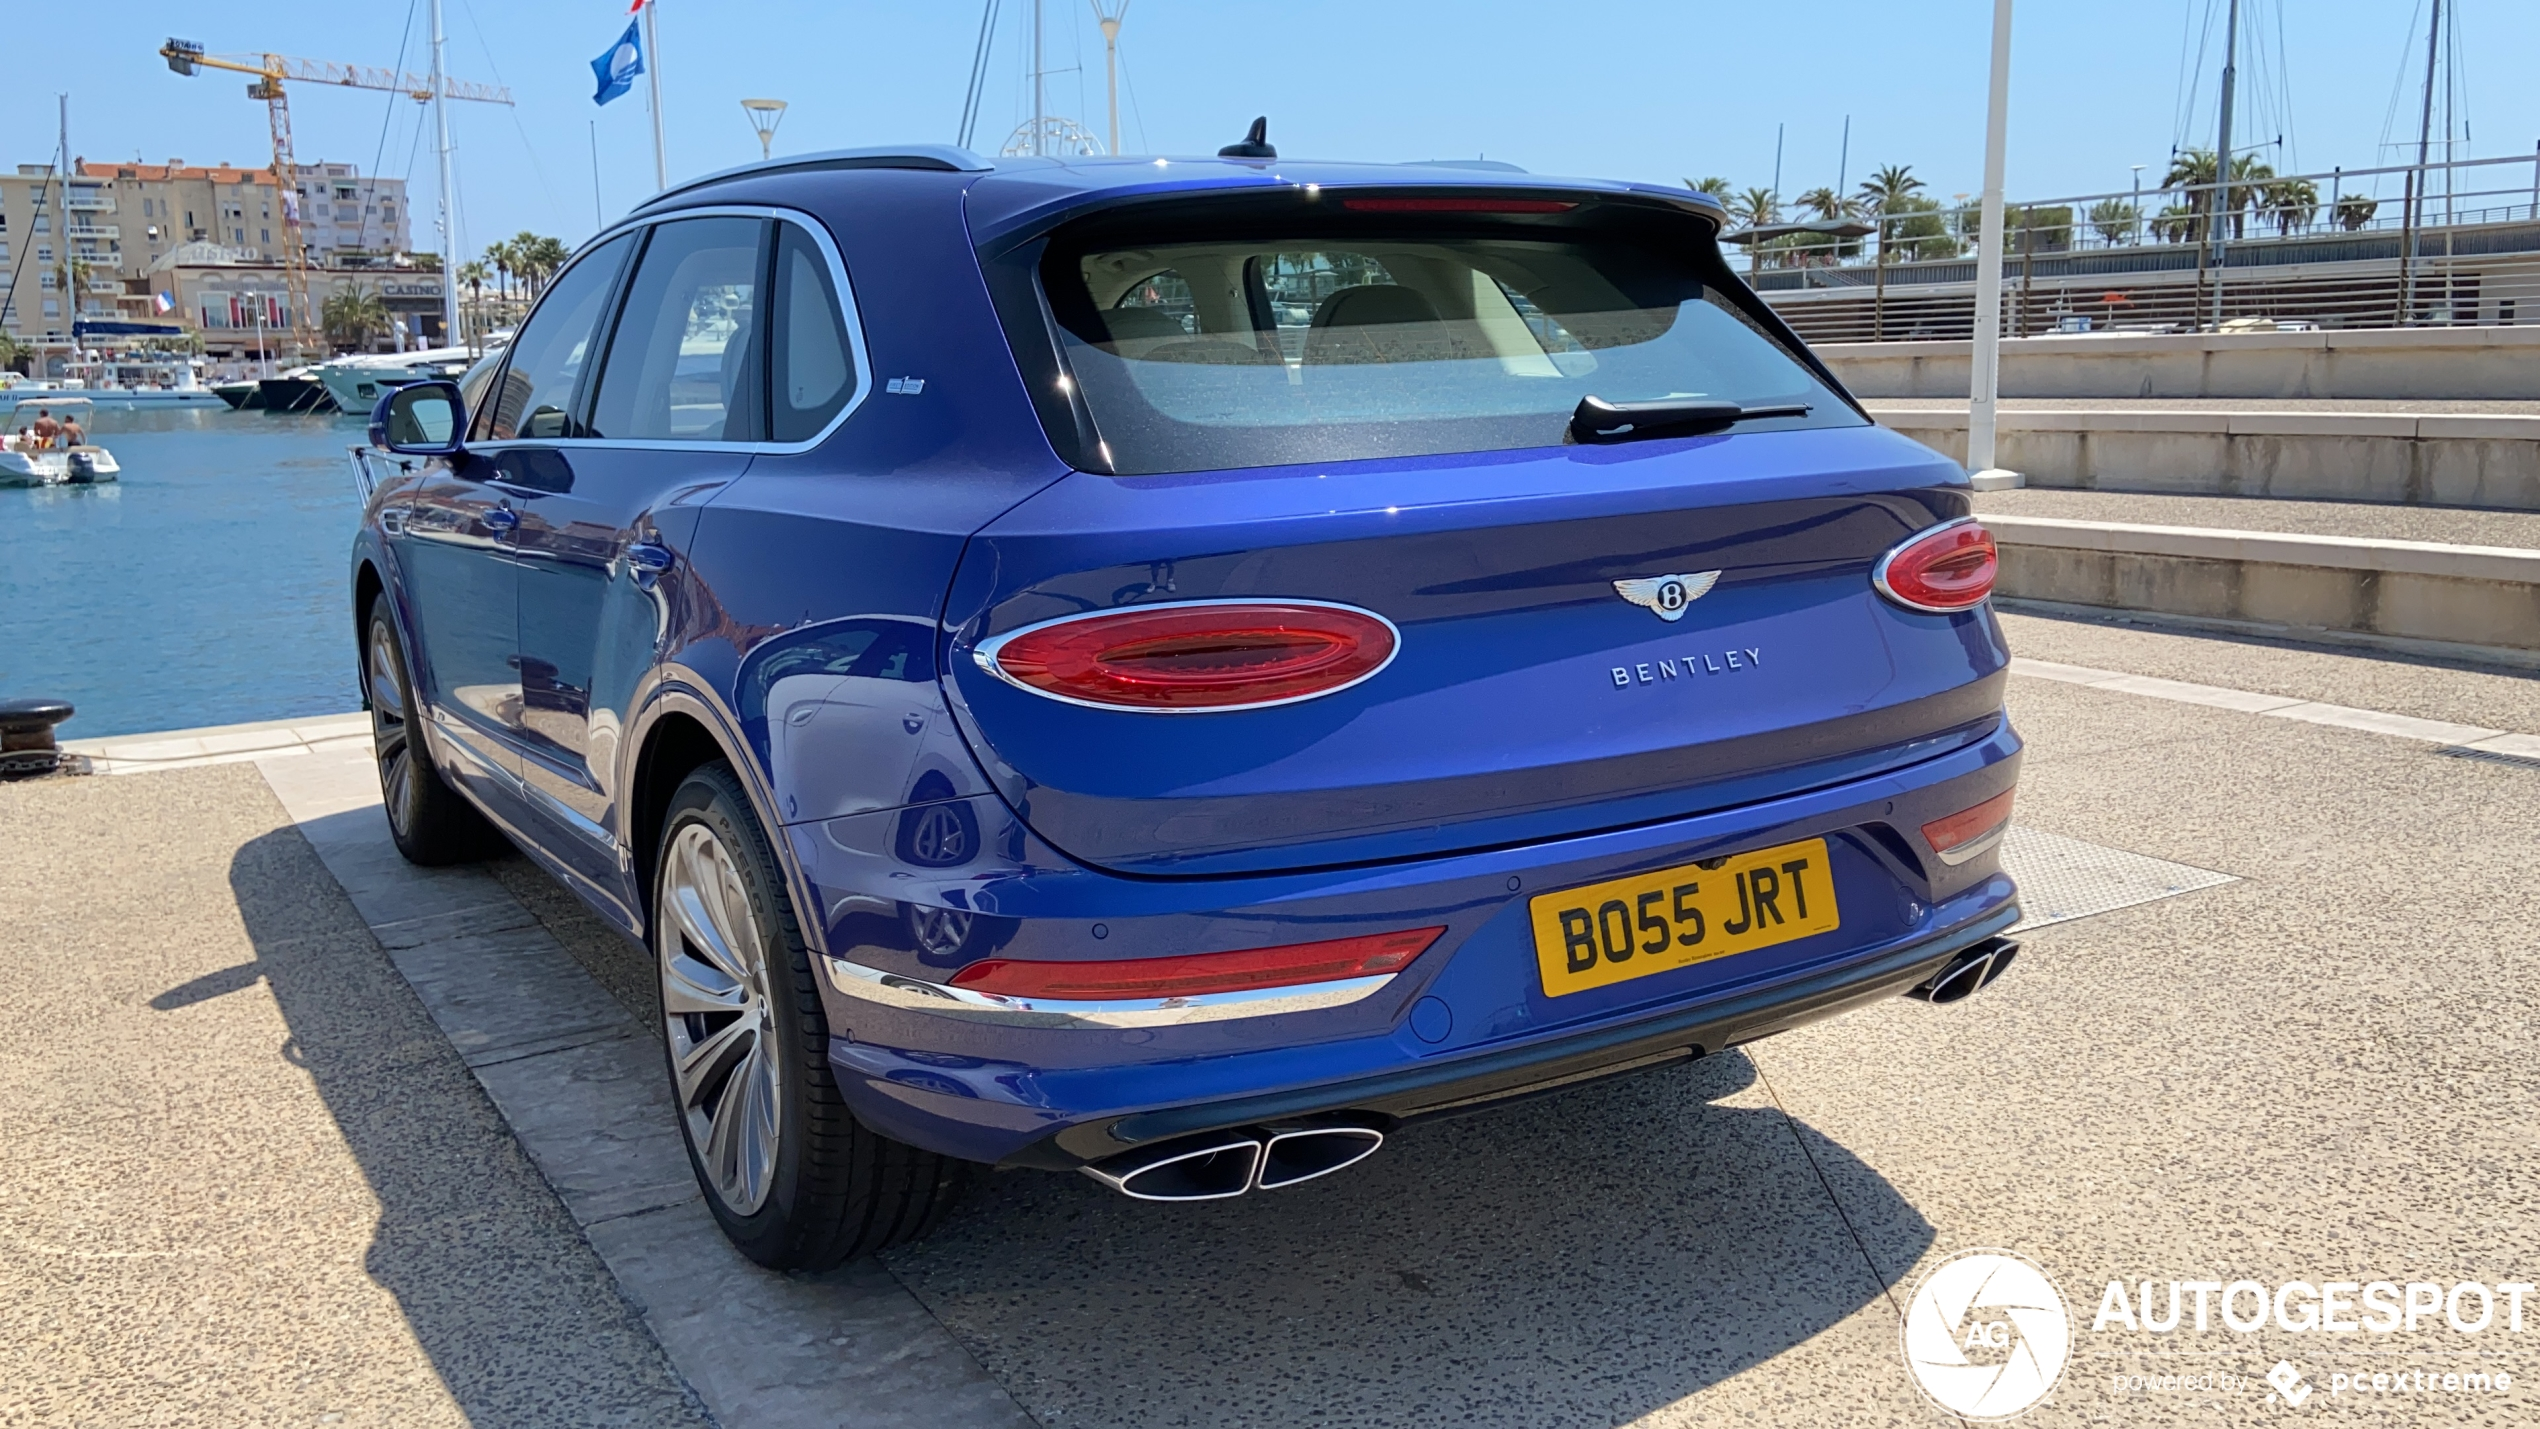 New Bentley Bentayga already reached the south of France.